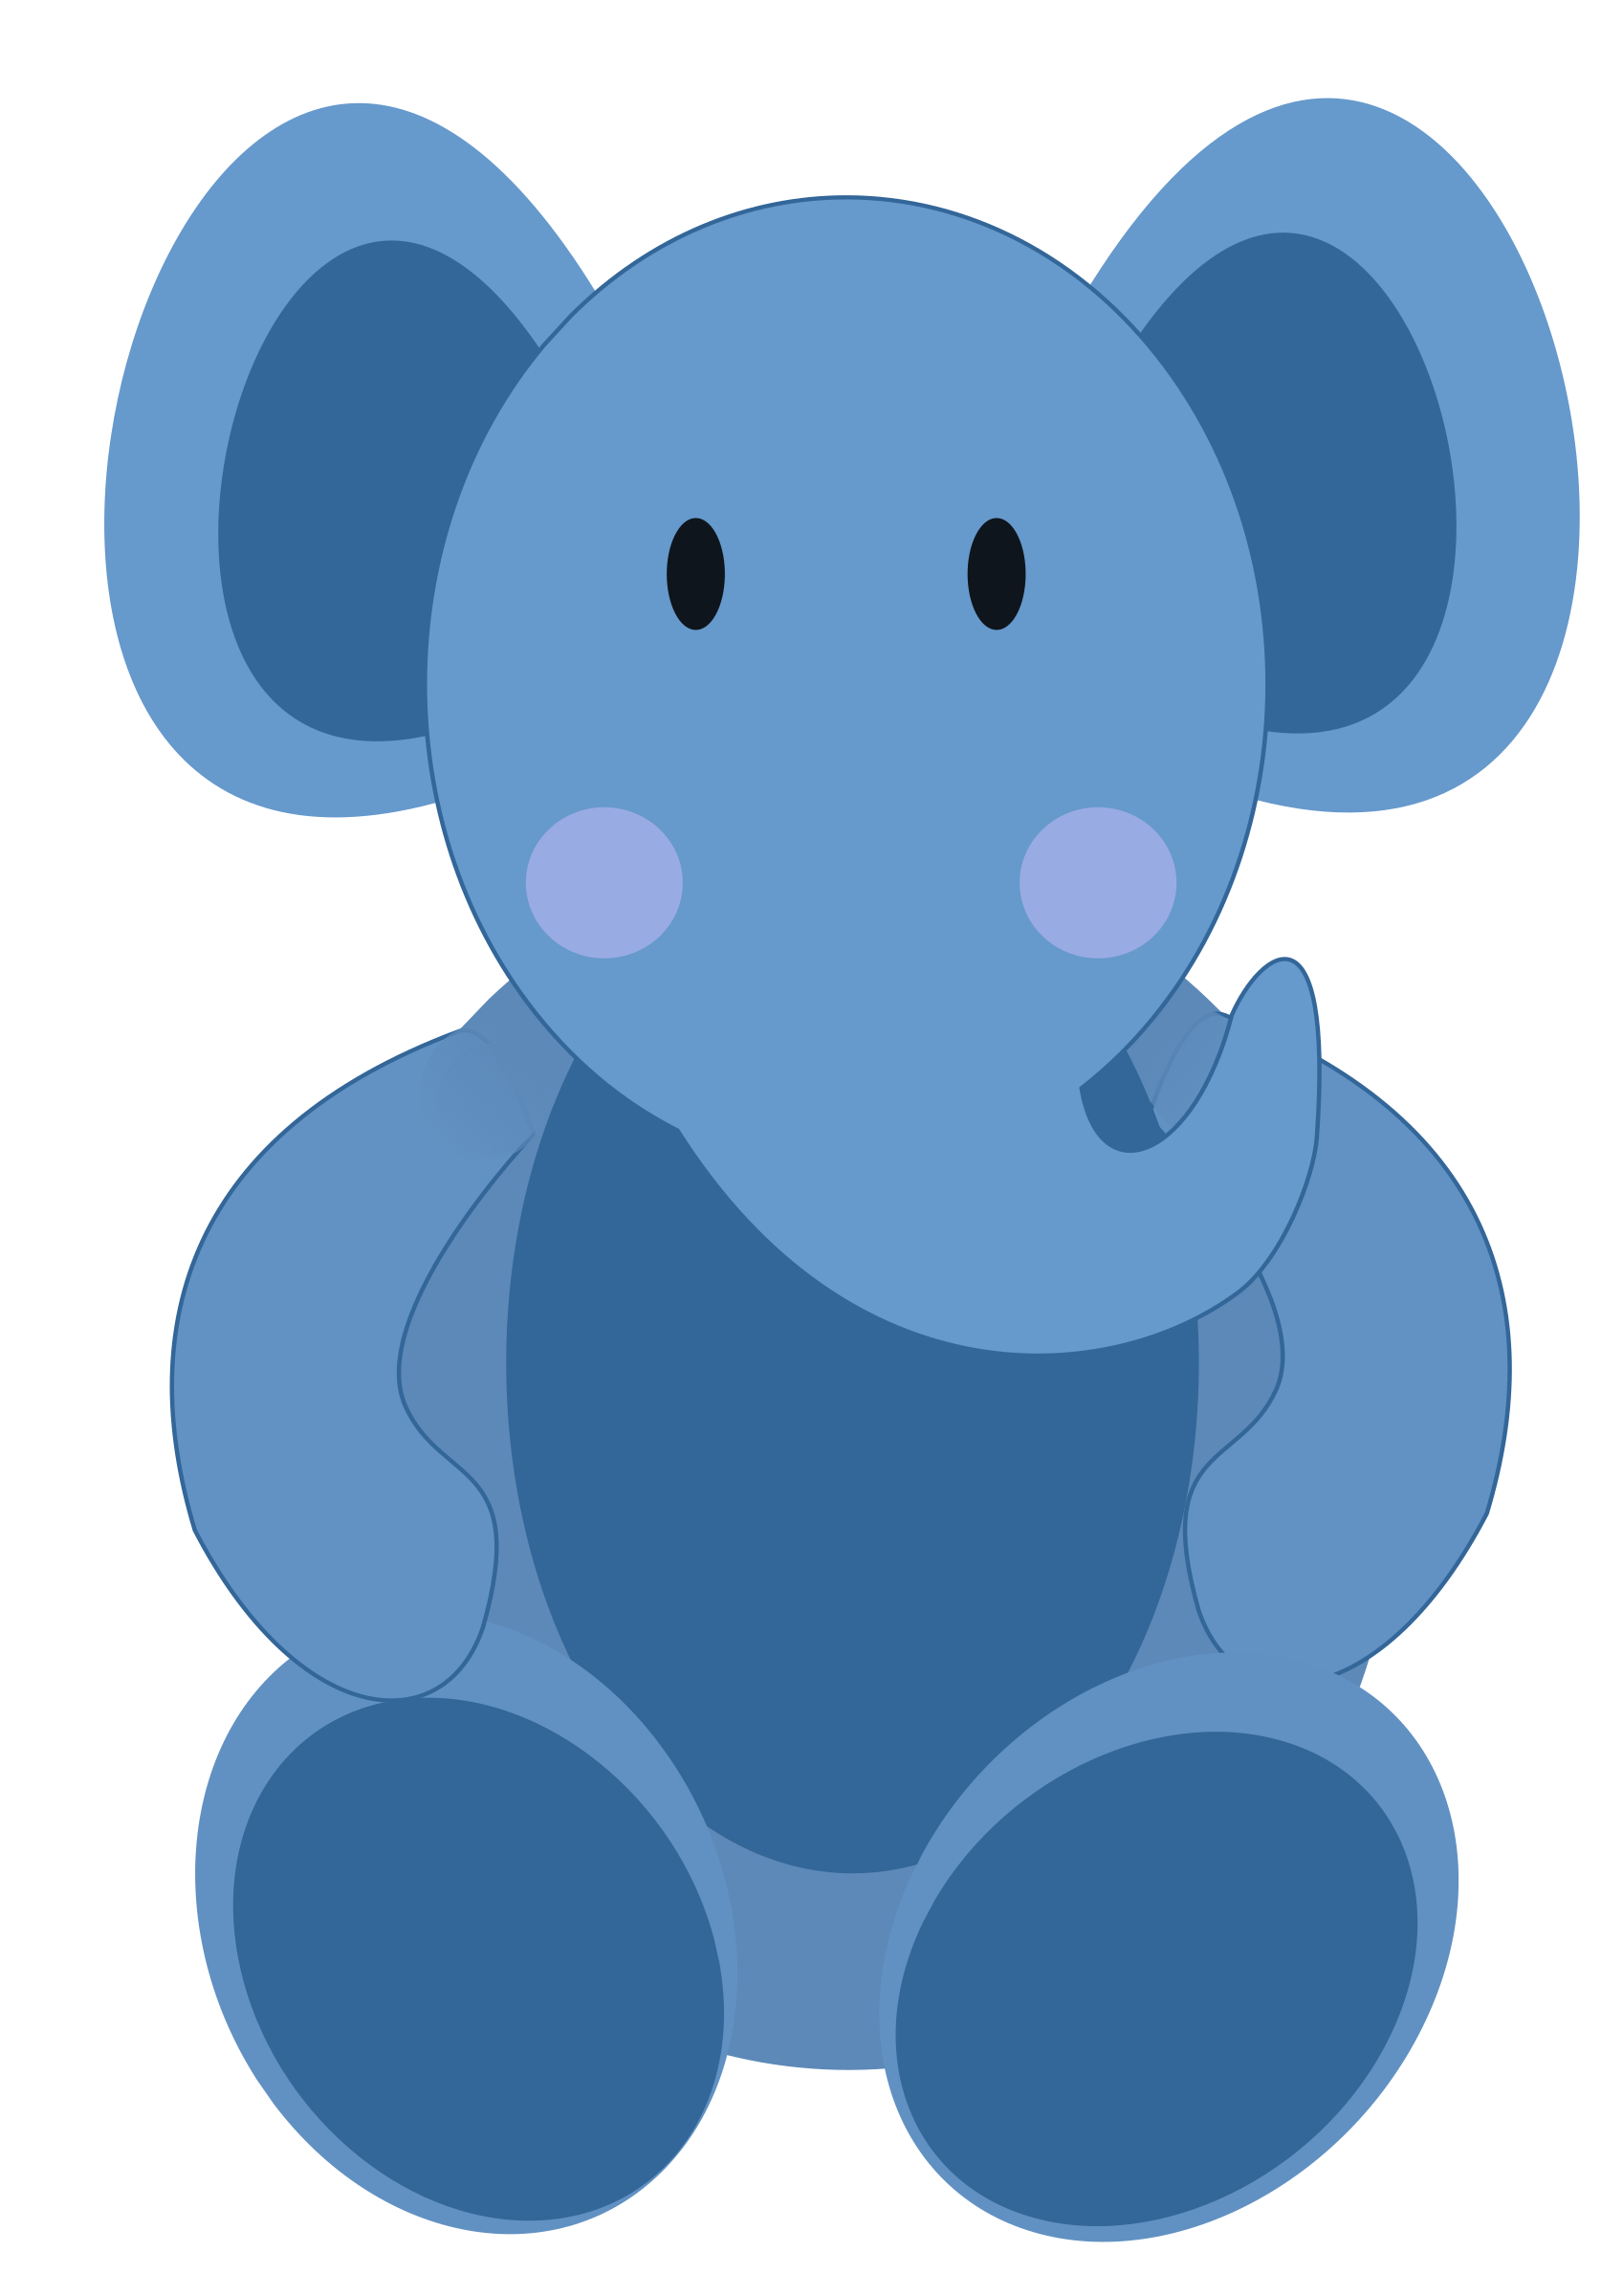 microsoft clip art elephant - photo #2